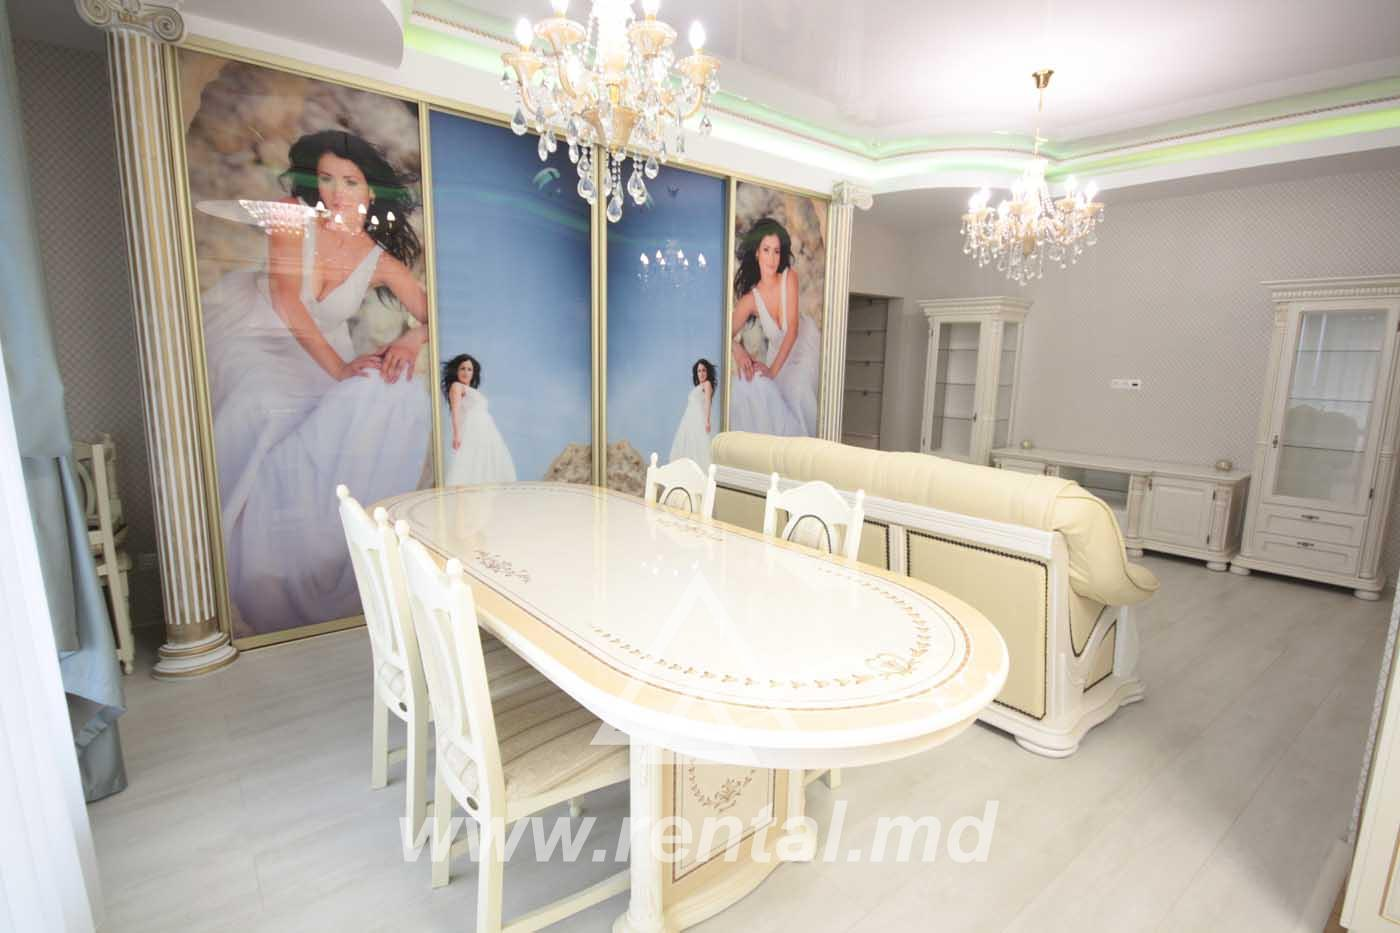 2-rooms VIP apartment for rent in Chisinau in Coliseum Palace